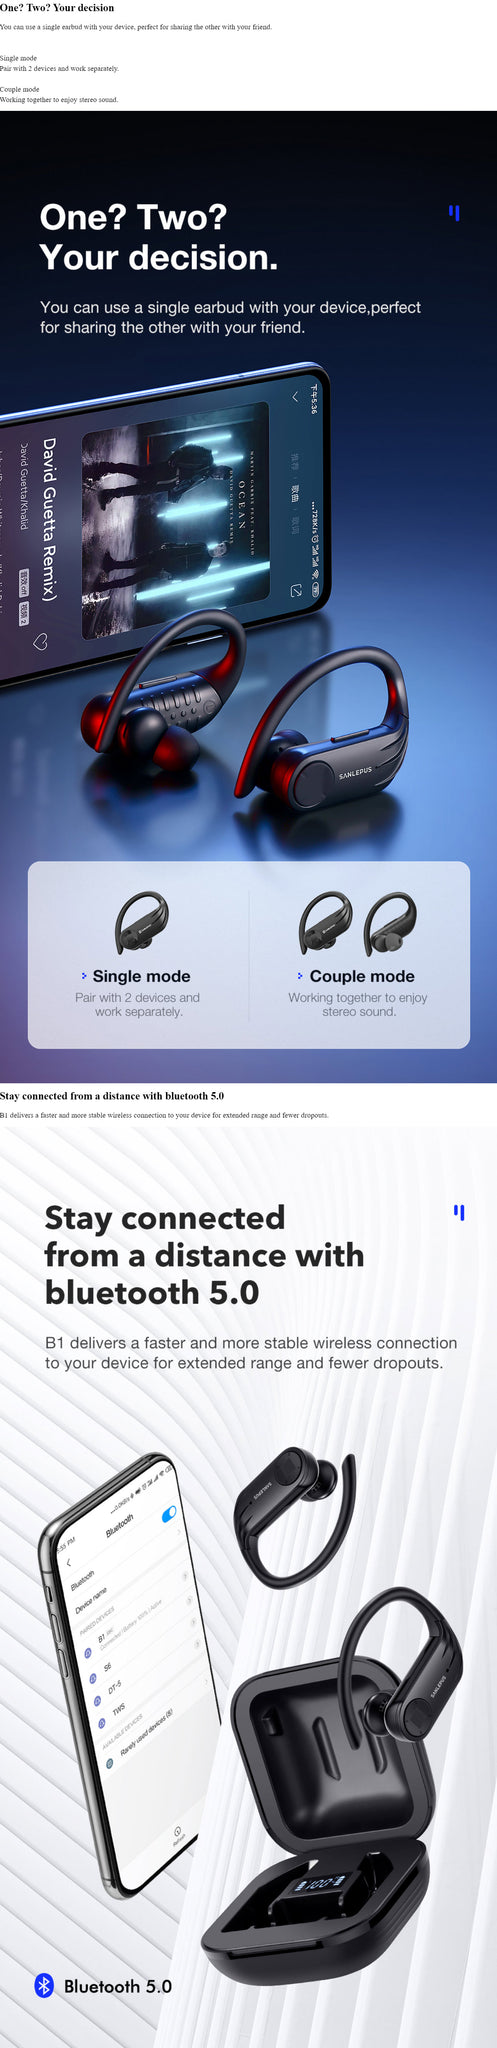 SANLEPUS Bluetooth TWS Sport Earphones One? Two? Your Decision Stay Connected